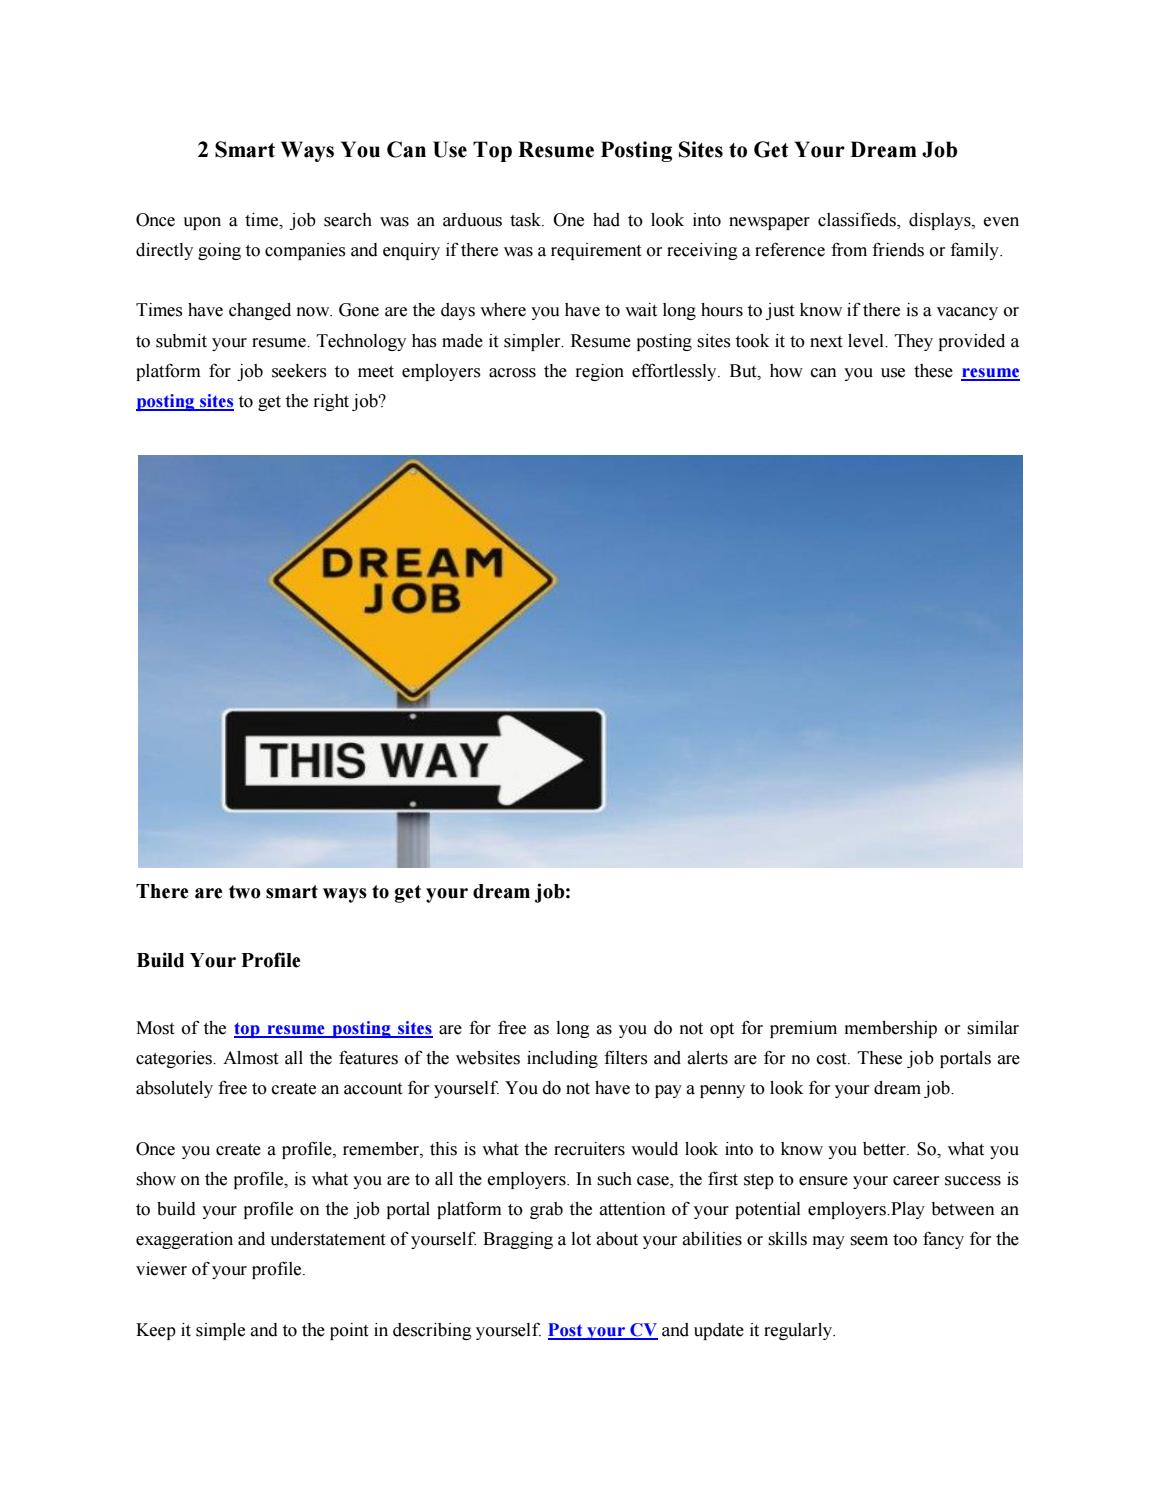 2 Smart Ways You Can Use Top Resume Posting Sites To Get Your Dream